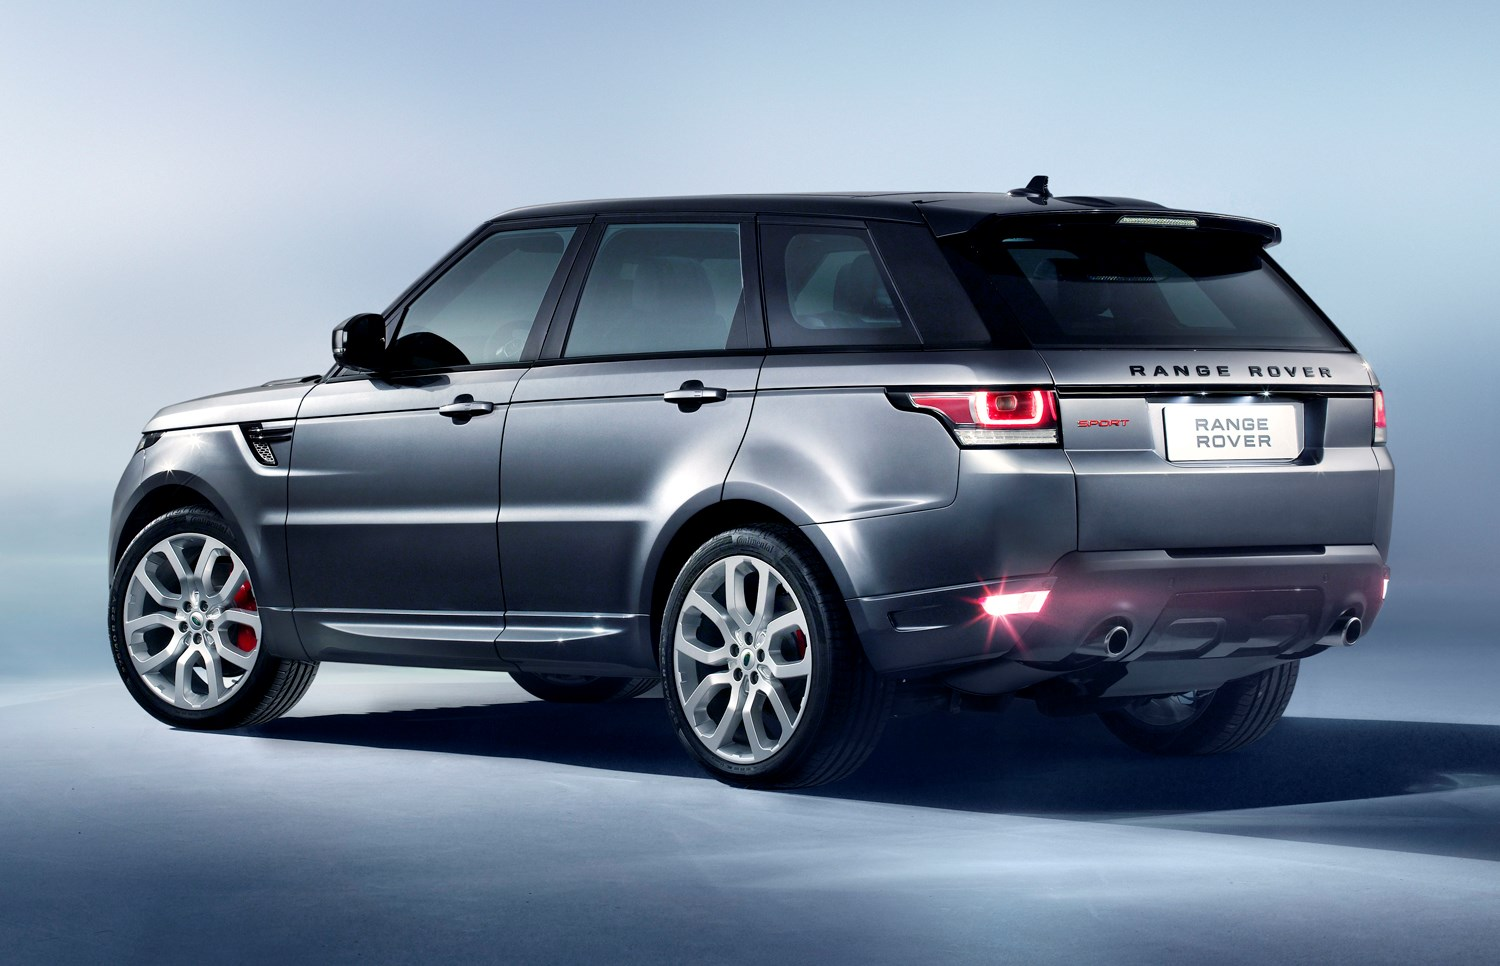 Used Land Rover For Sale Uk Second Hand Land Rover Cars